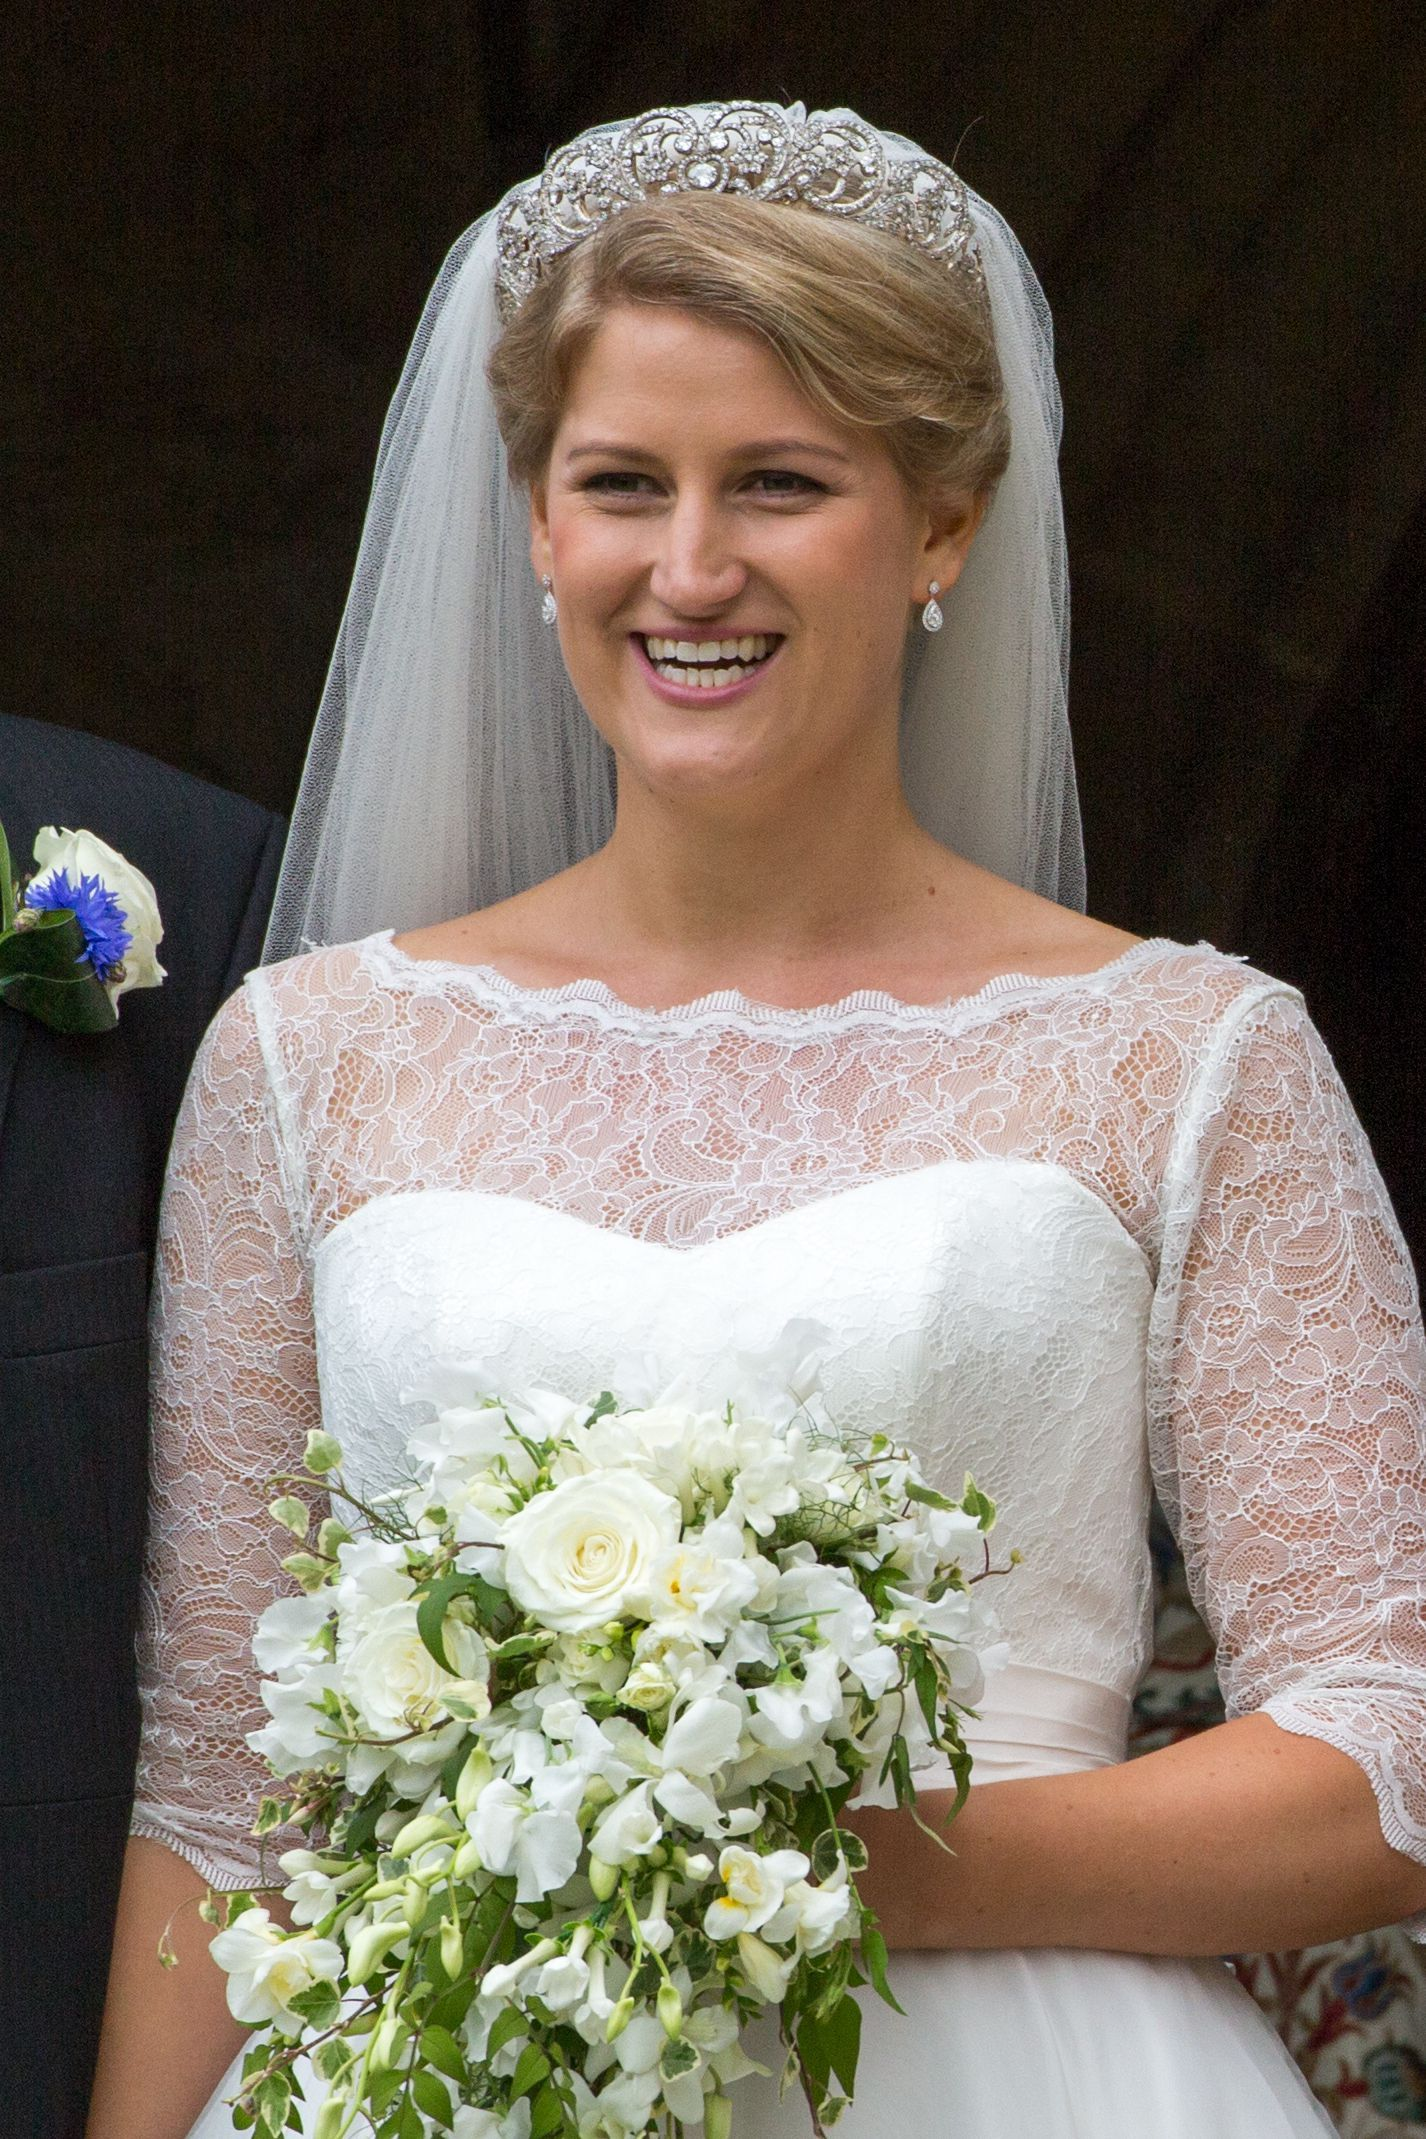 Princess Diana's Wedding Tiara Was Just Worn by Her Niece